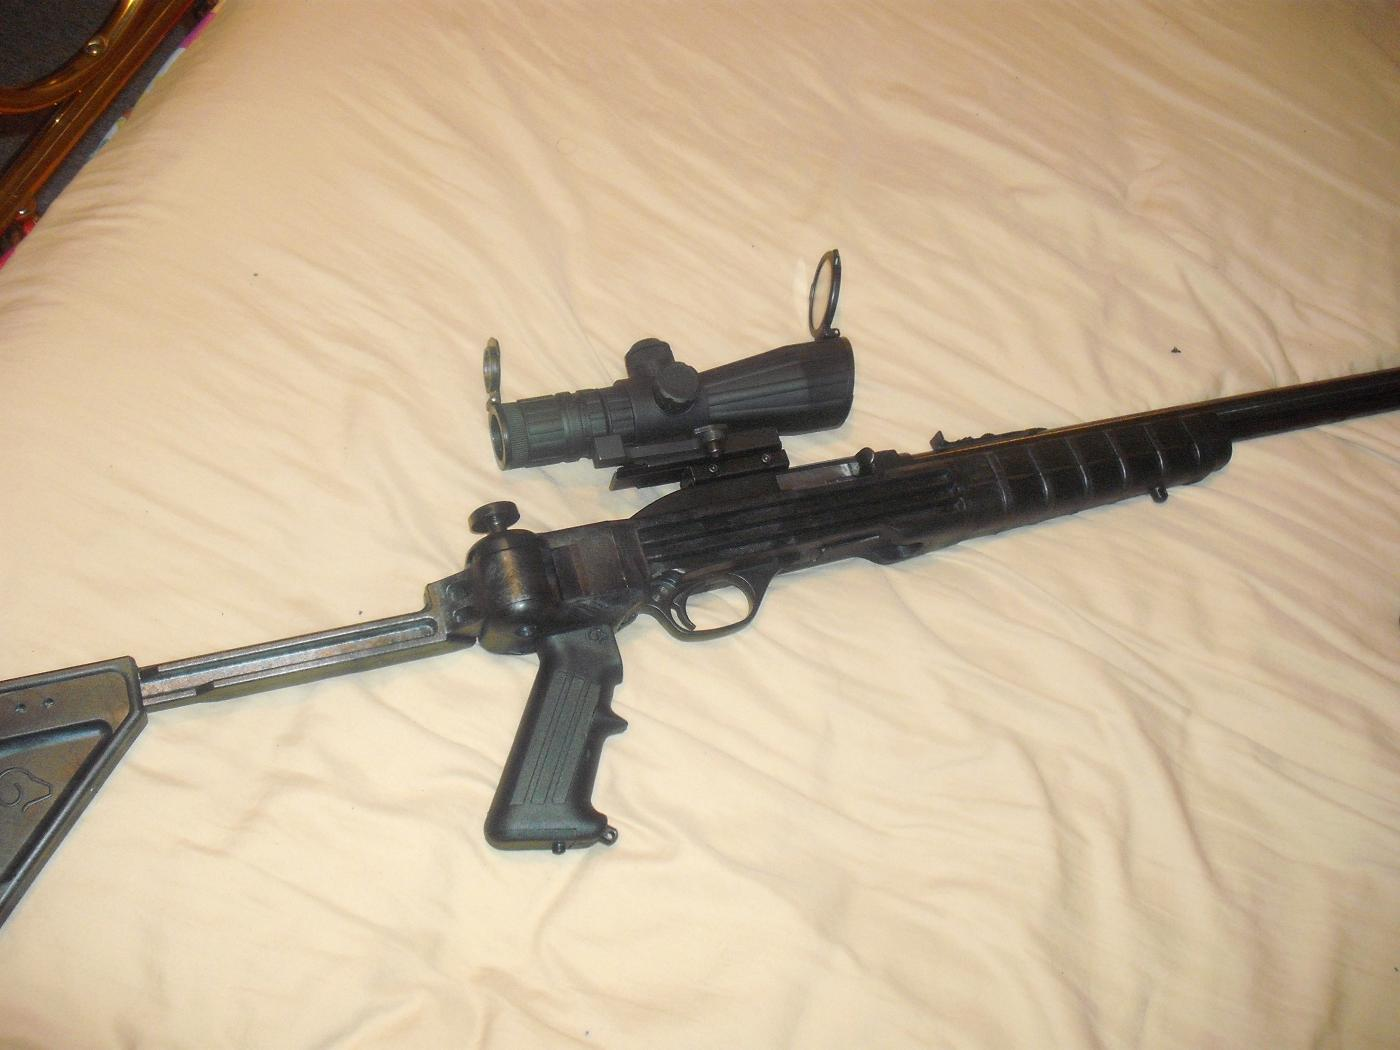 Folding Stock For Marlin 60 The Firearms Forum The Buying